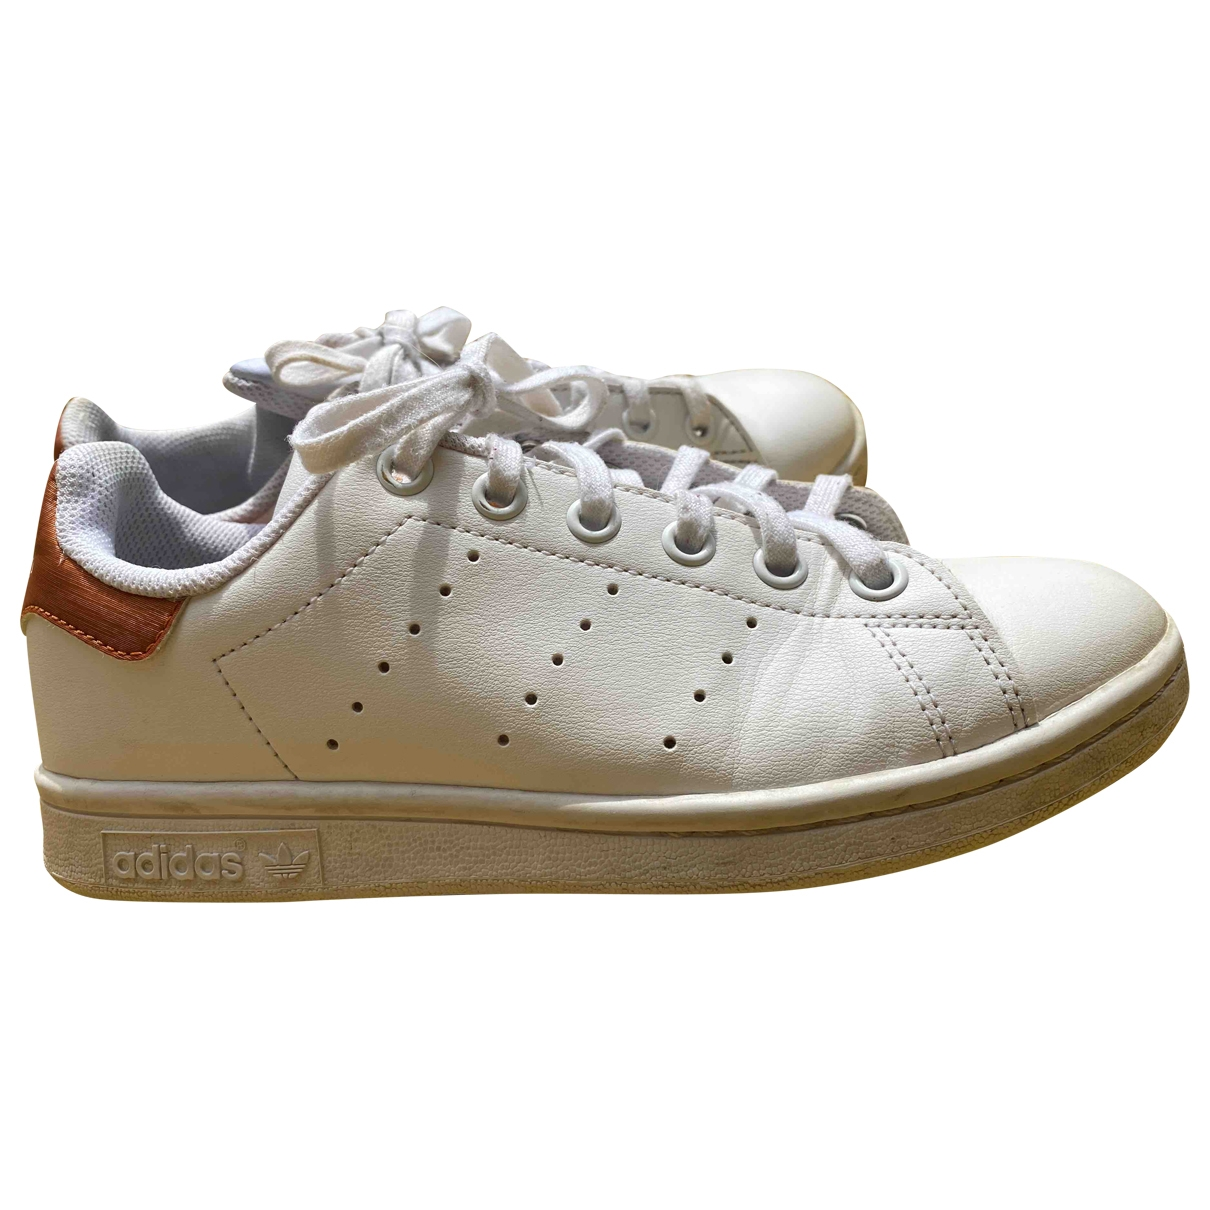 Adidas Stan Smith White Leather Trainers for Kids 35 EU